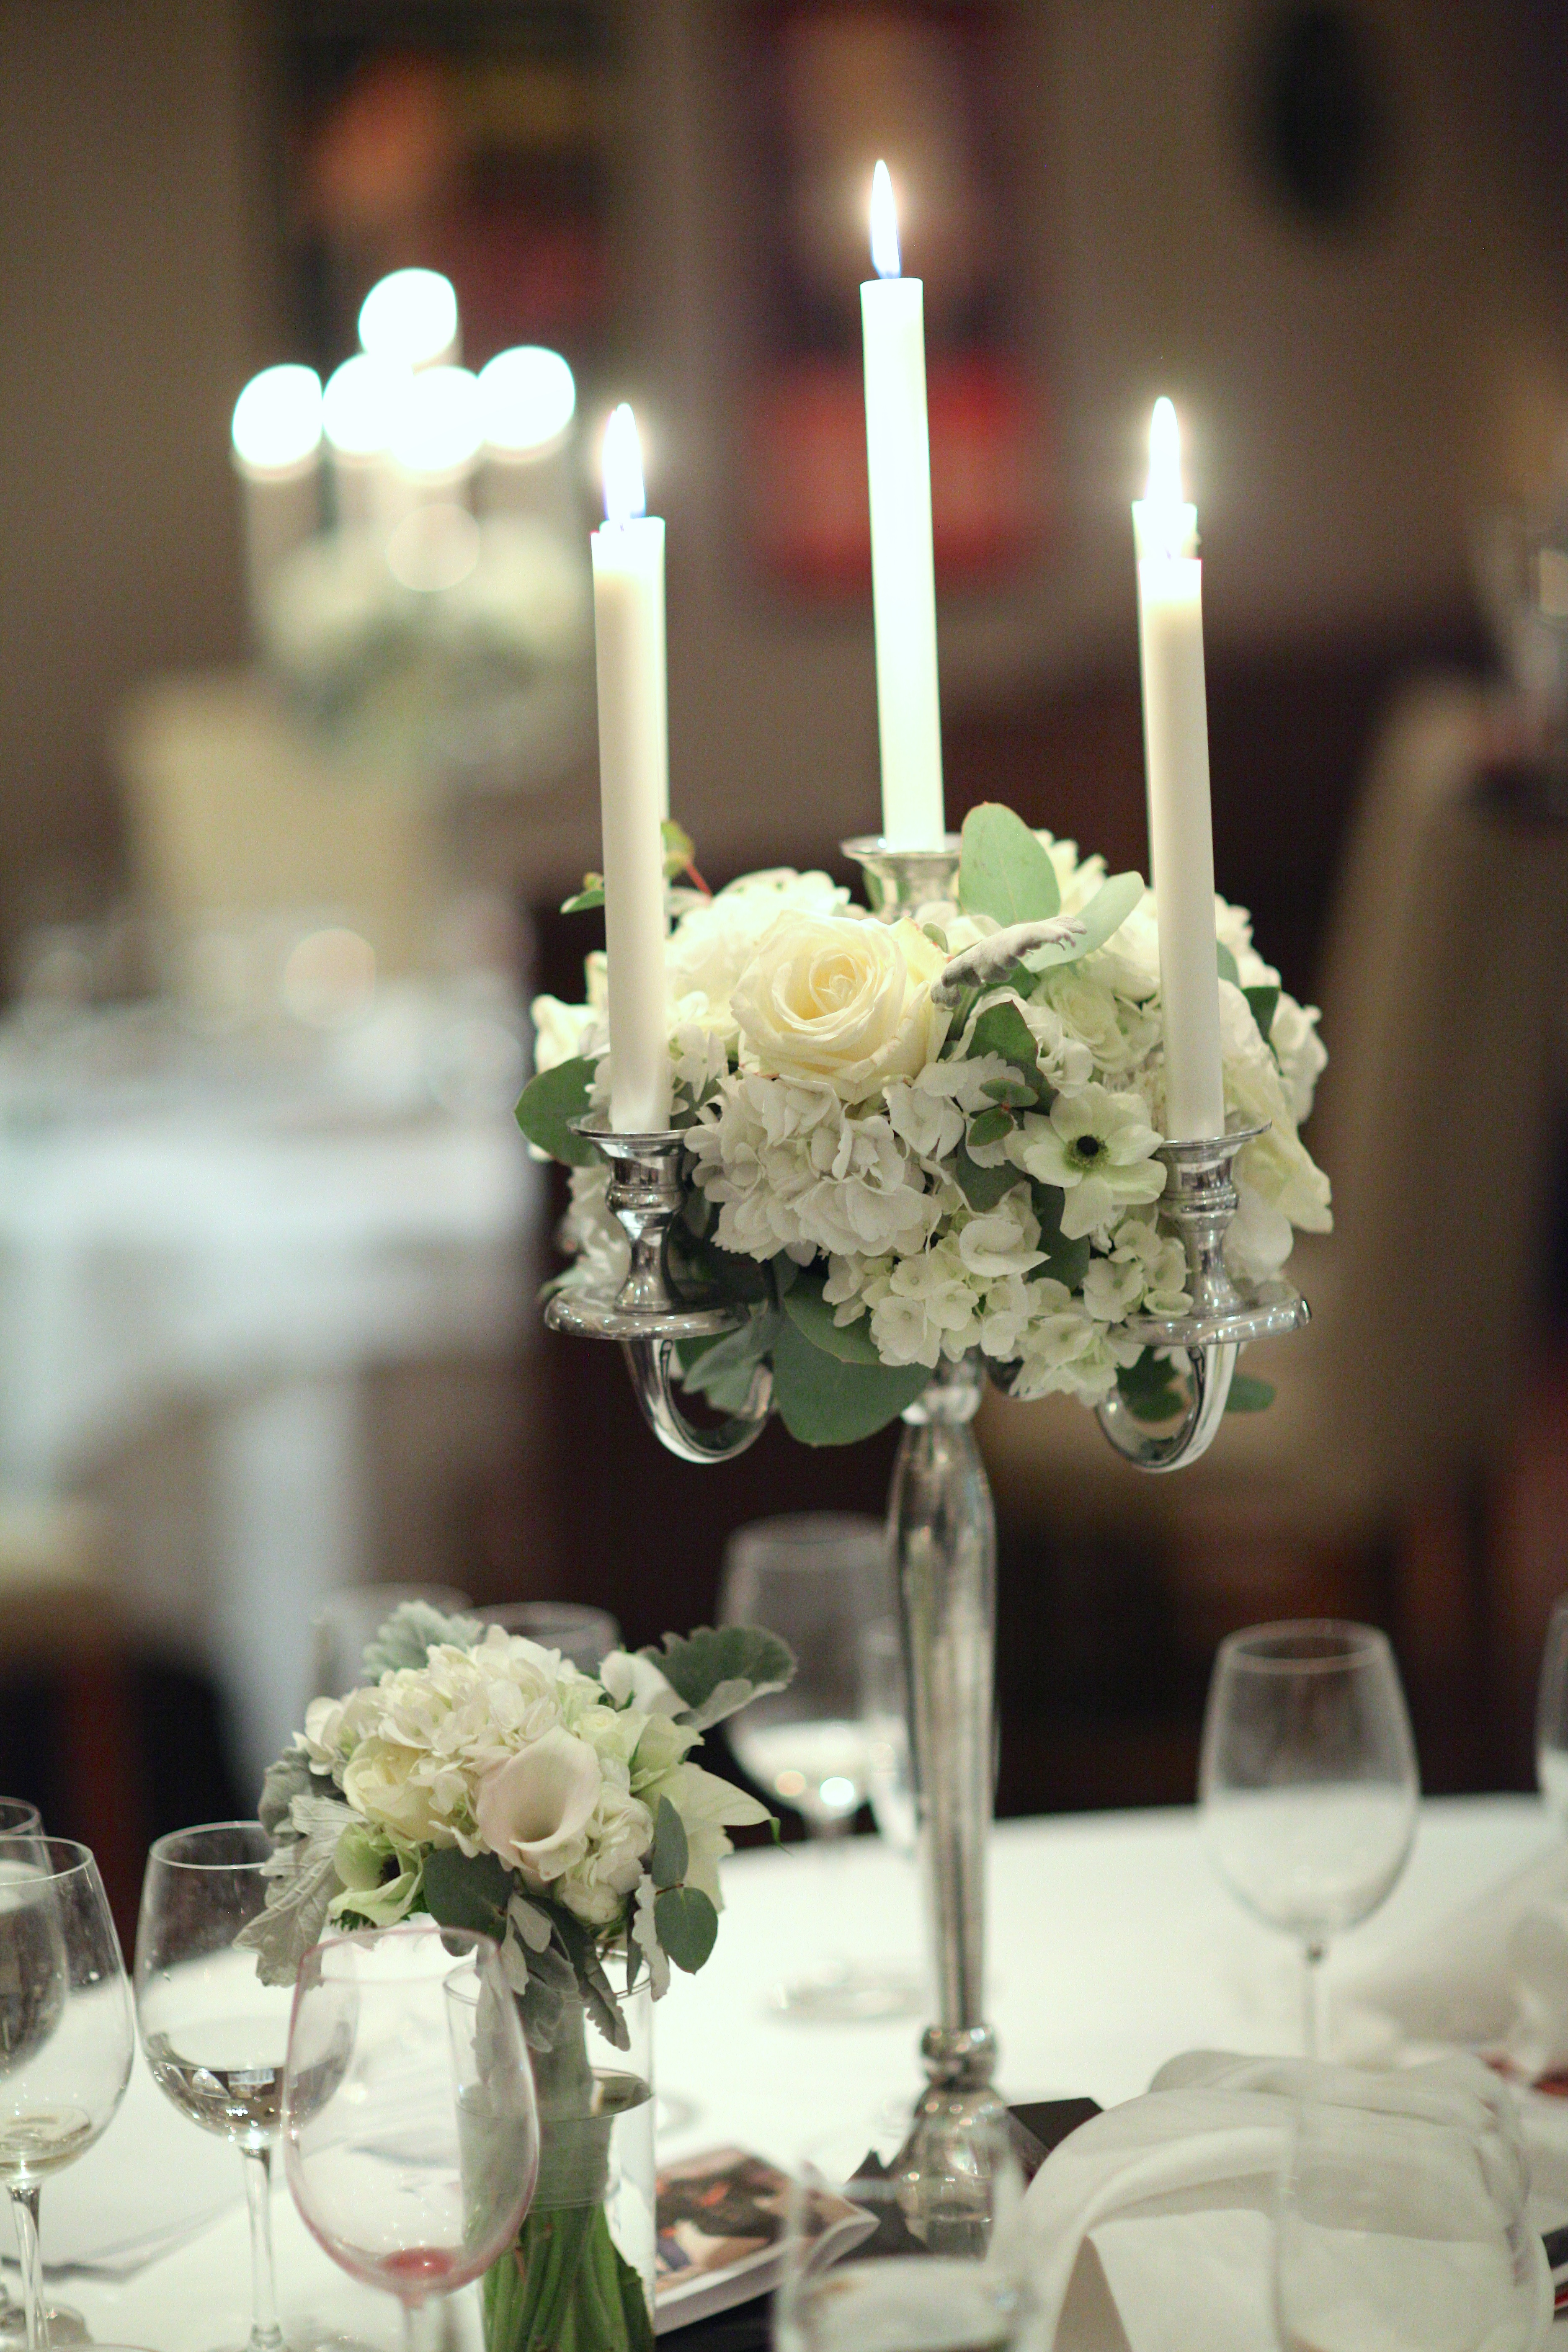 Candelabra dressed with roses, hydrangea, anemones and lisianthus